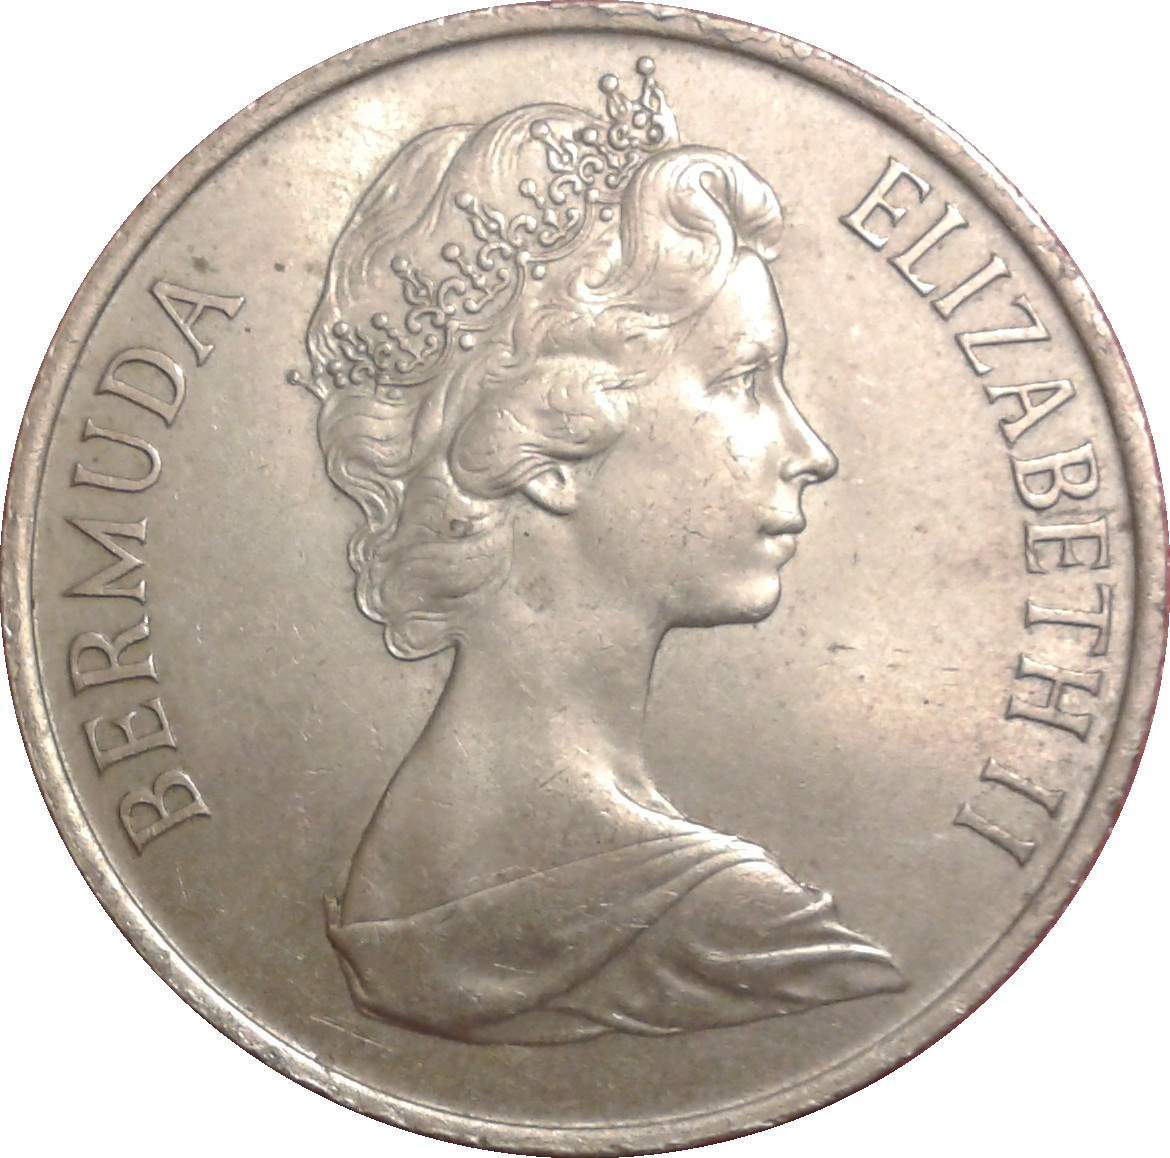 Coins and Canada  5 cents 1943  Canadian coins price